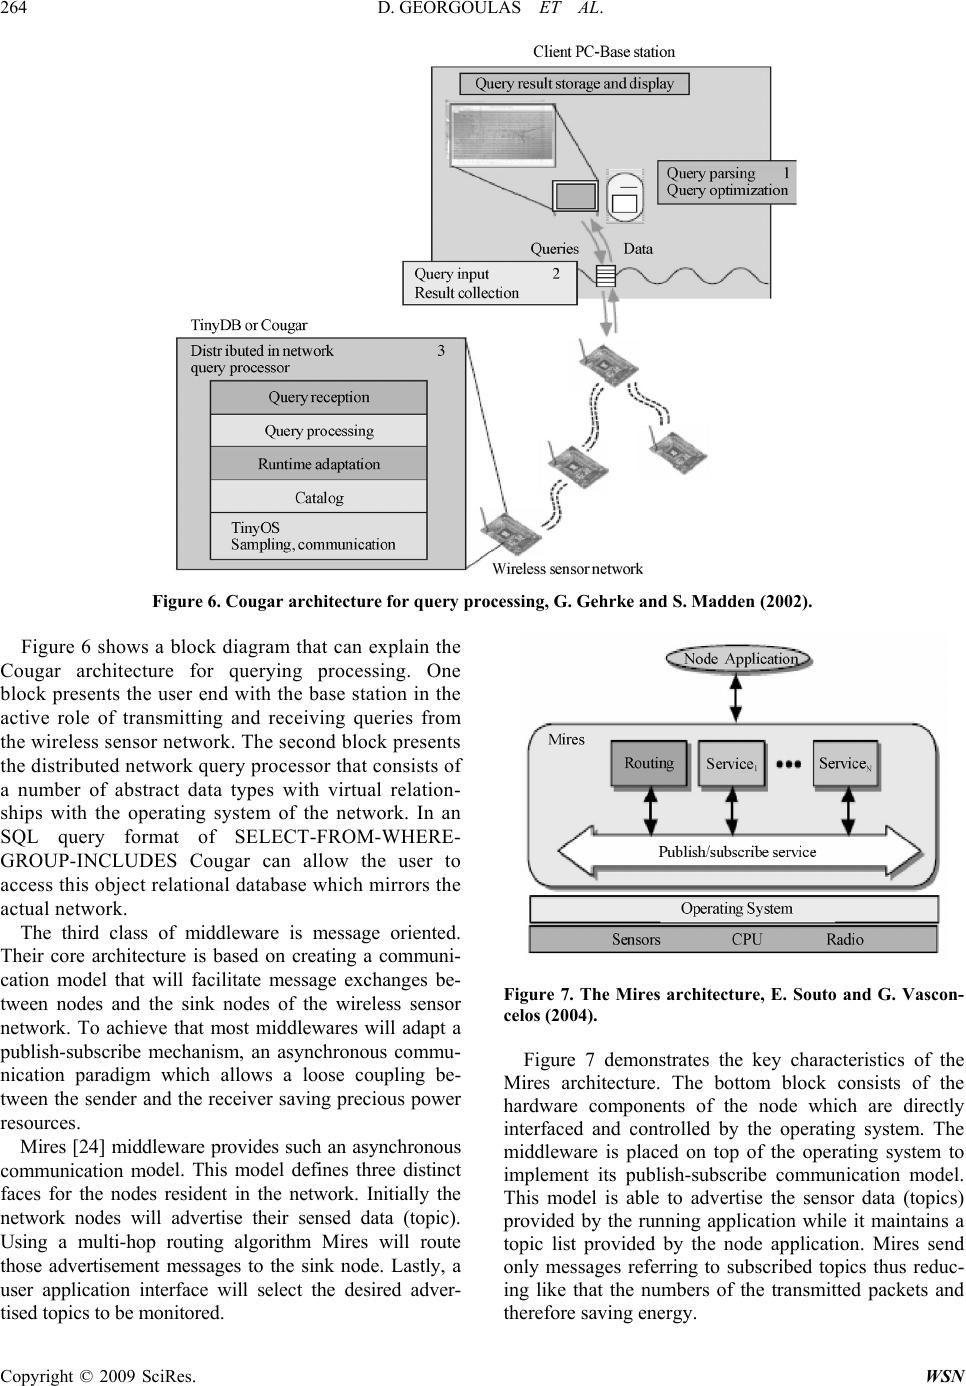 wireless sensor network management and functionality  an